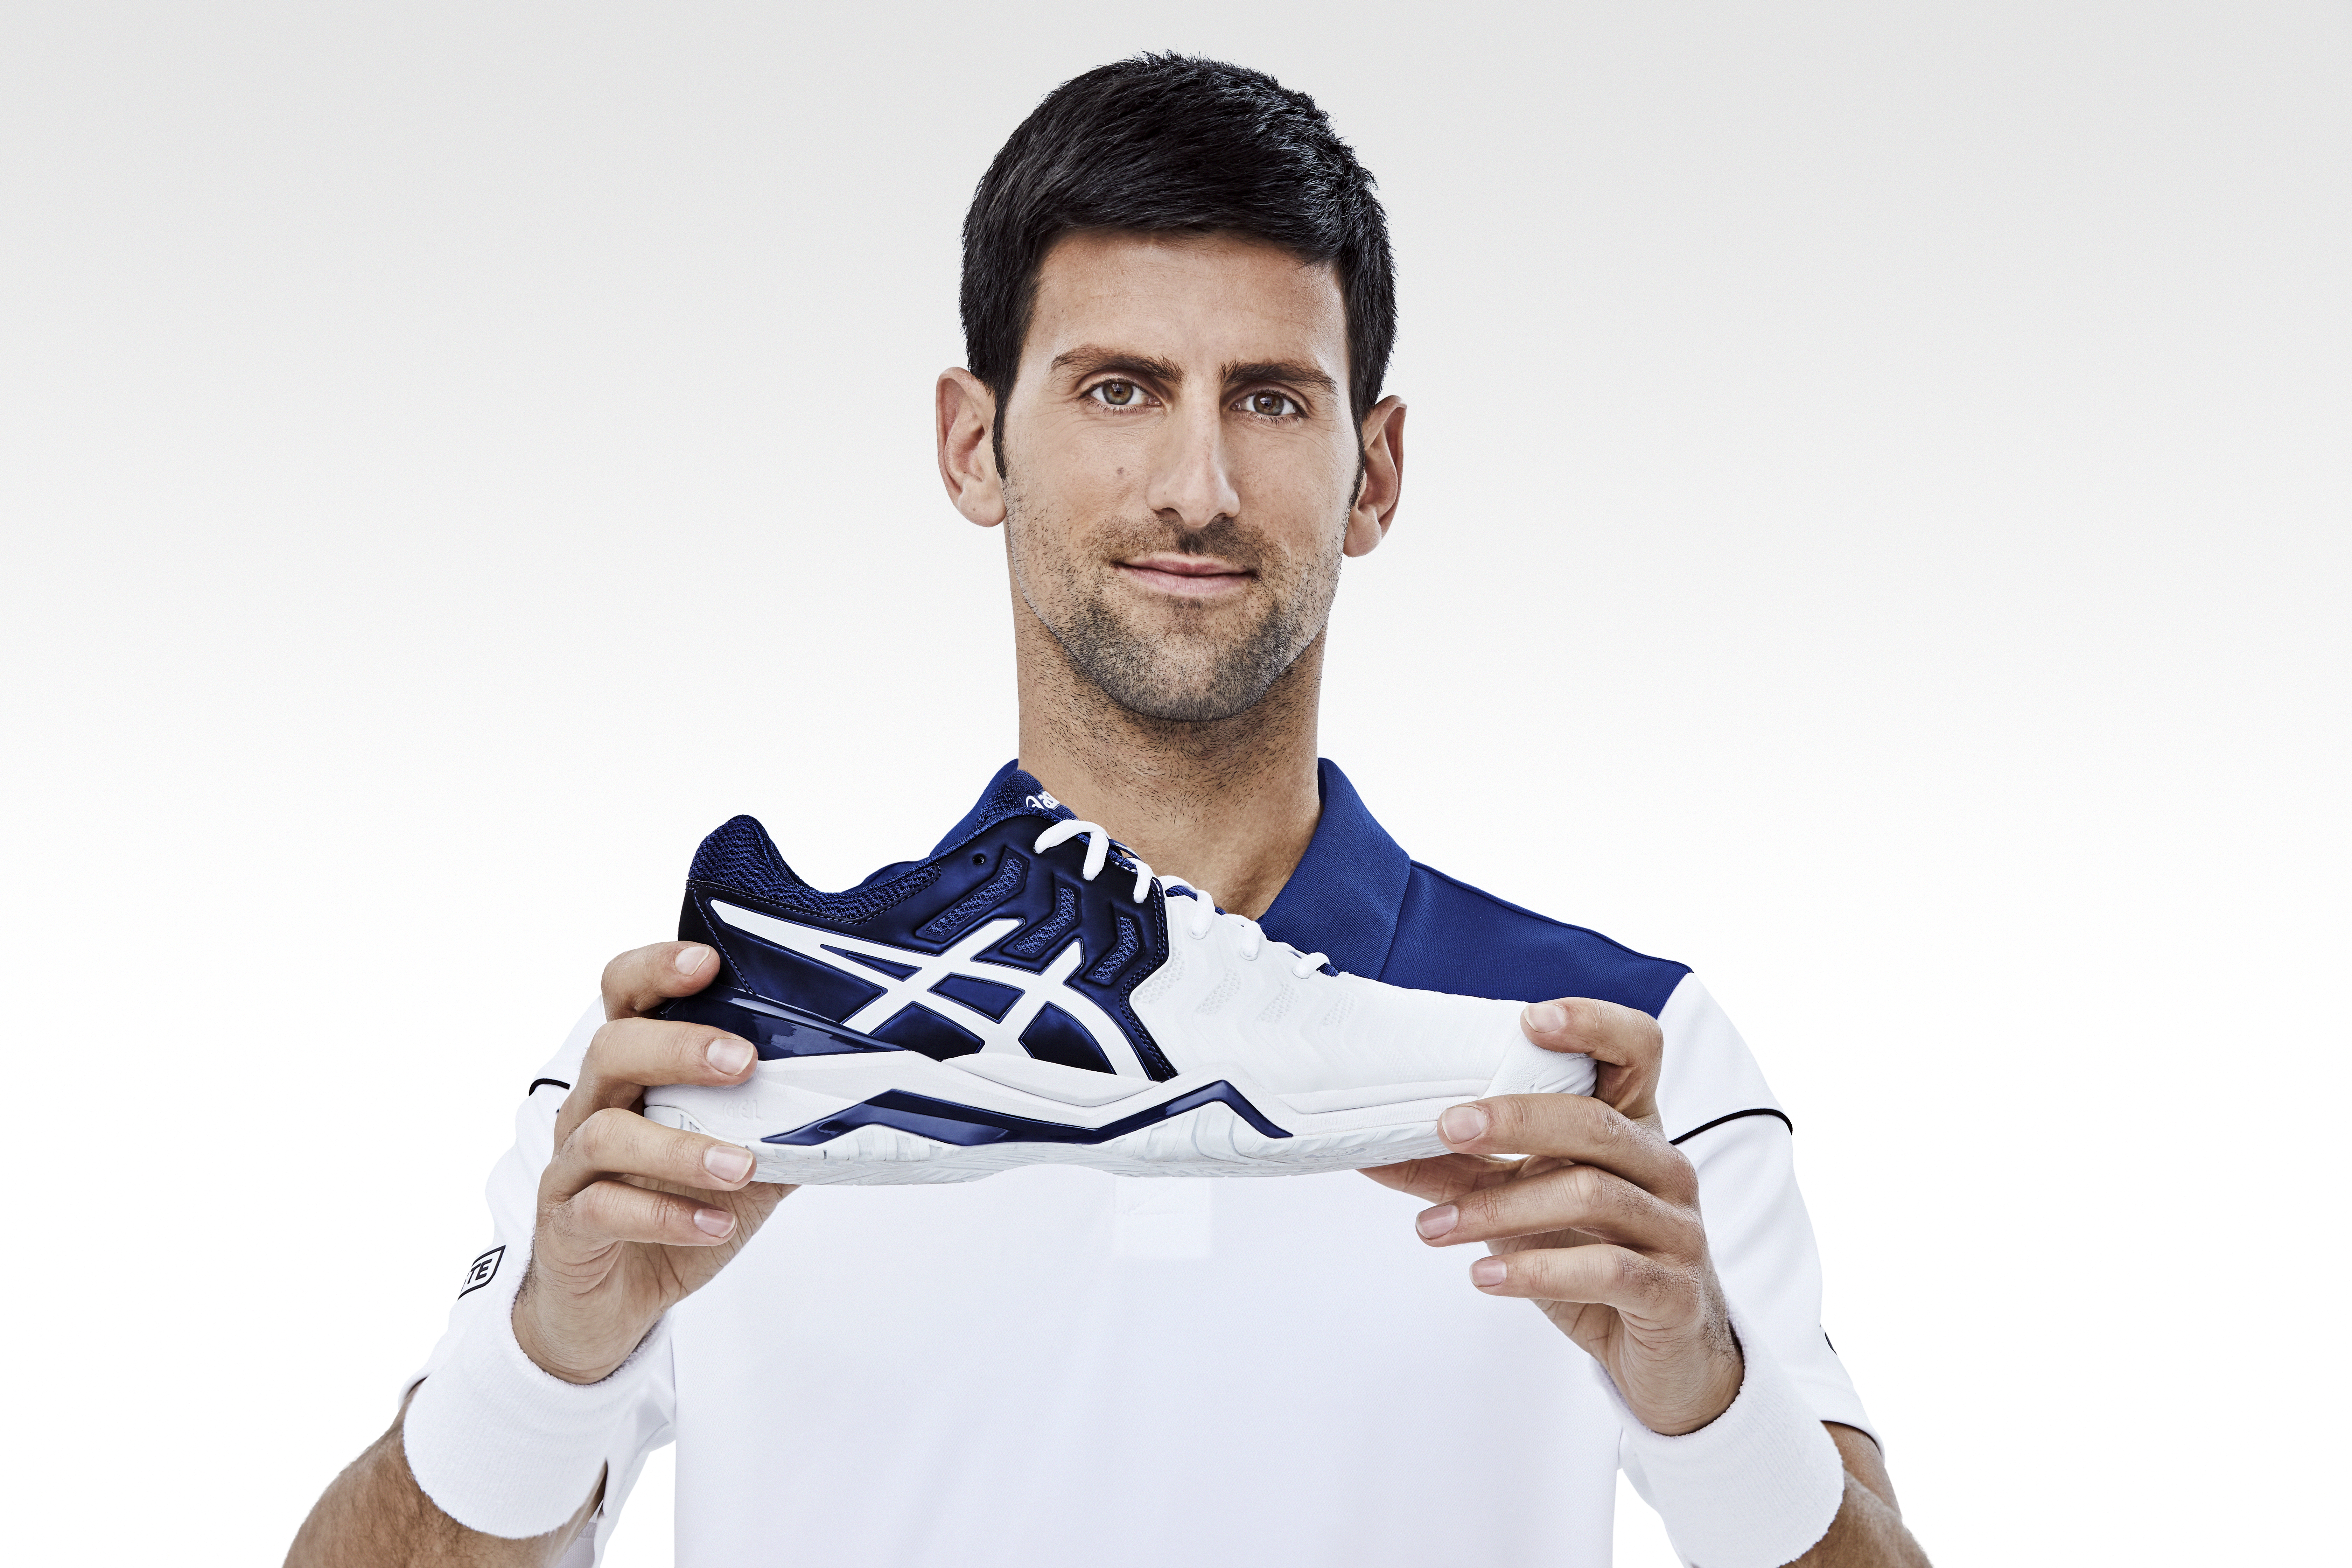 ... 2018 - Today, ASICS announced a partnership with world class tennis  player, Novak Djokovic to celebrate the launch of an exclusive new tennis  shoe, ...